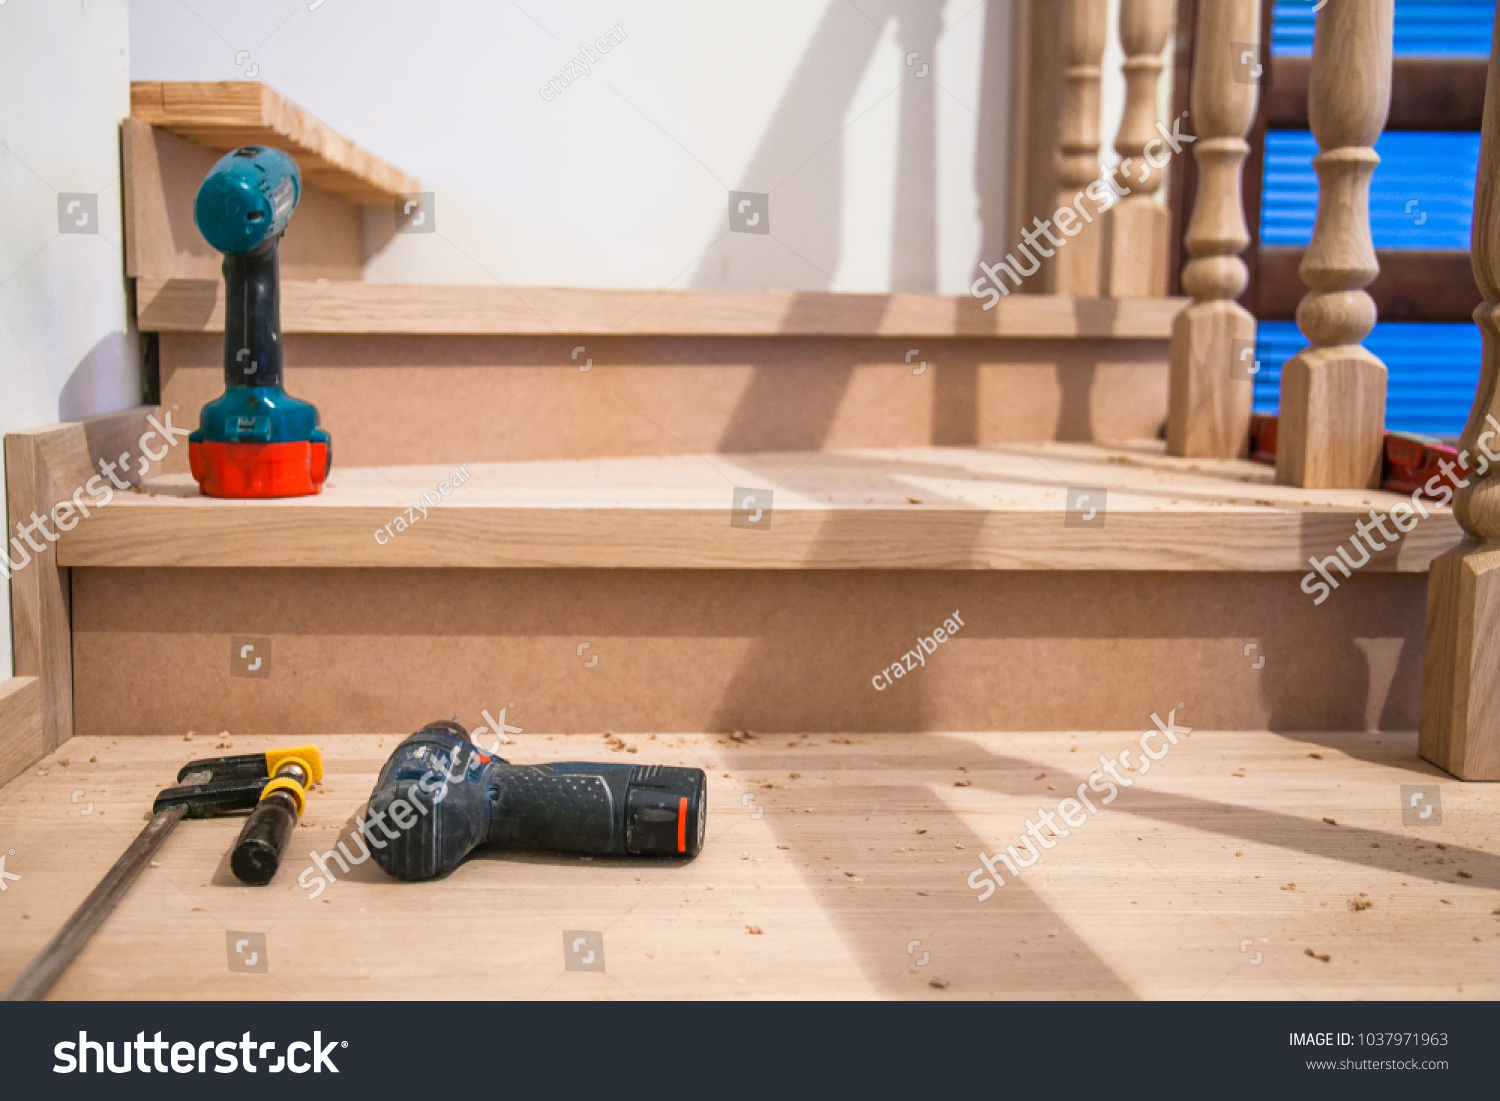 stock-photo-manufacturing-repair-of-wooden-stairs-in-a-residential-building-1037971963